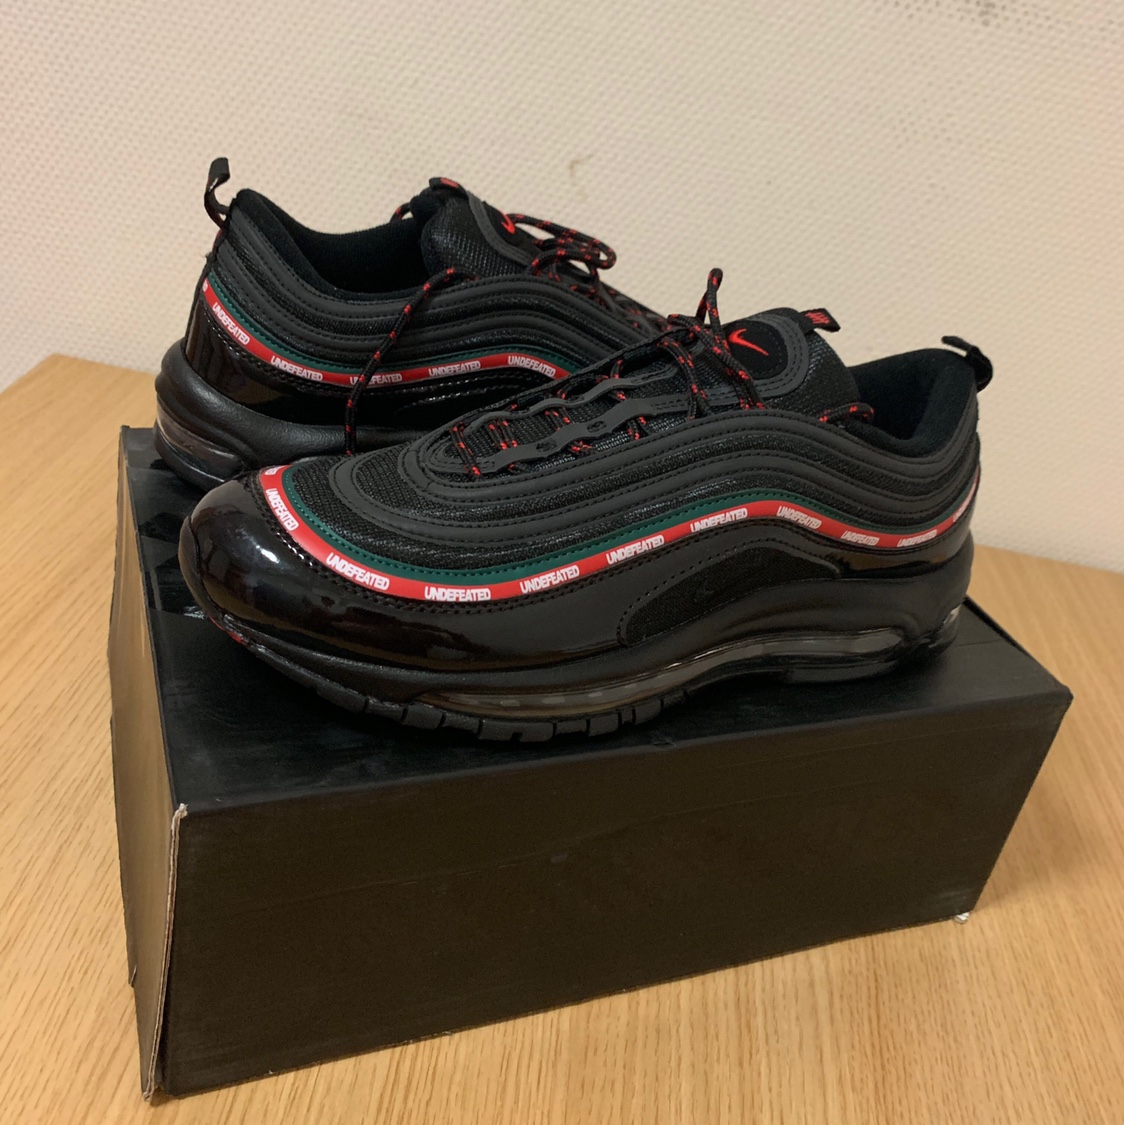 Nike x UNDEFEATED Air Max 97 Black colour way Depop